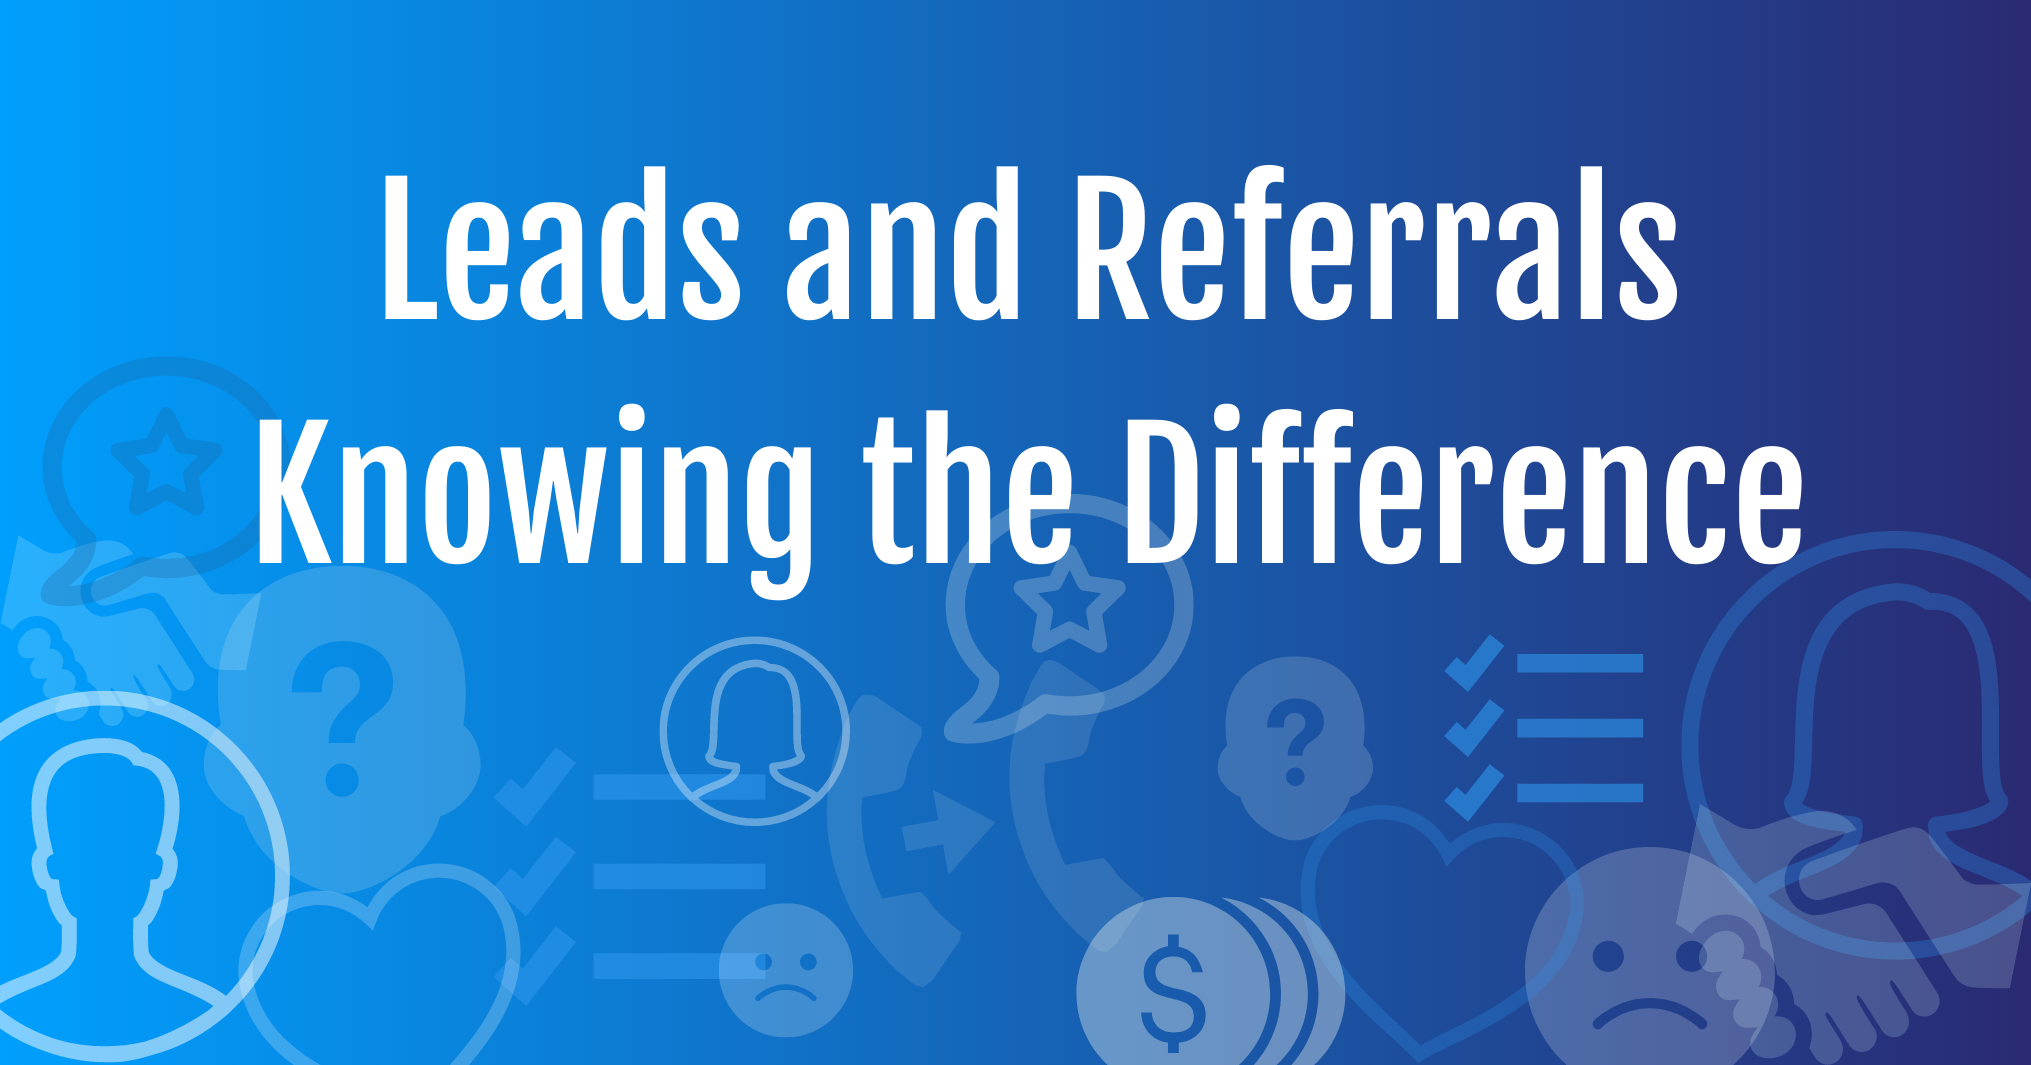 Leads and Referrals - Knowing the Difference